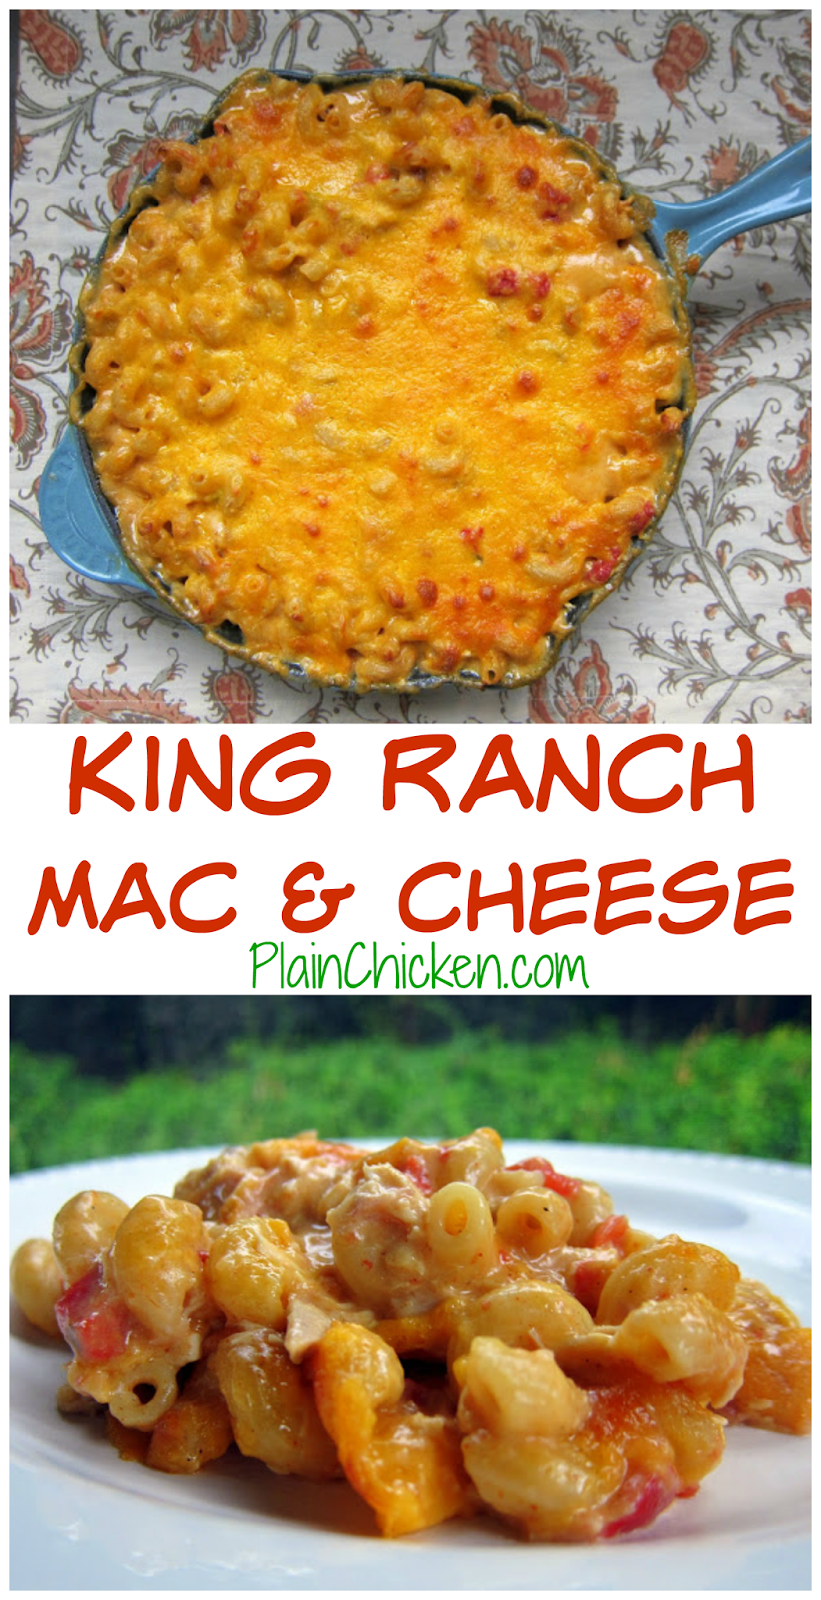 King Ranch Mac and Cheese Recipe- best dish ever! Pasta, chicken, chicken soup, sour cream, Velveeta, cheddar and Rotel - so addictive! He asked me to make it again, twice, while we were still eating it!